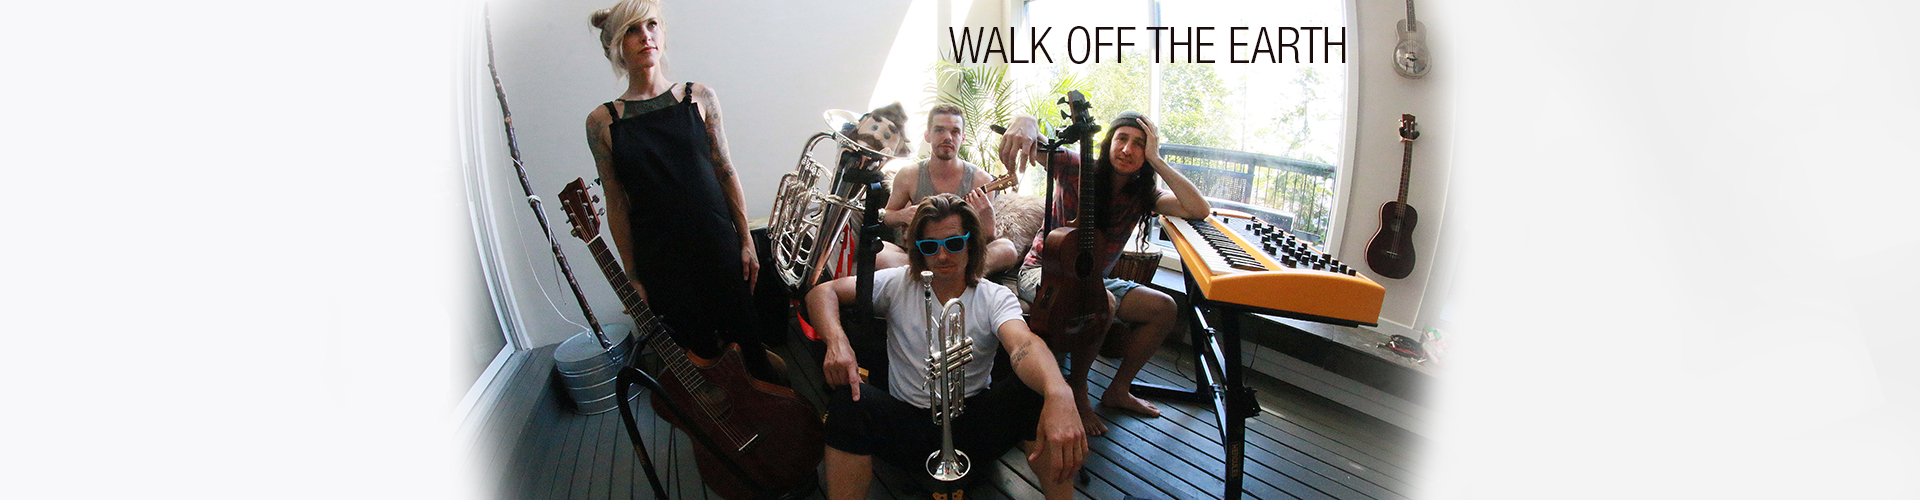 Artist Spotlight - Walk Of The Earth